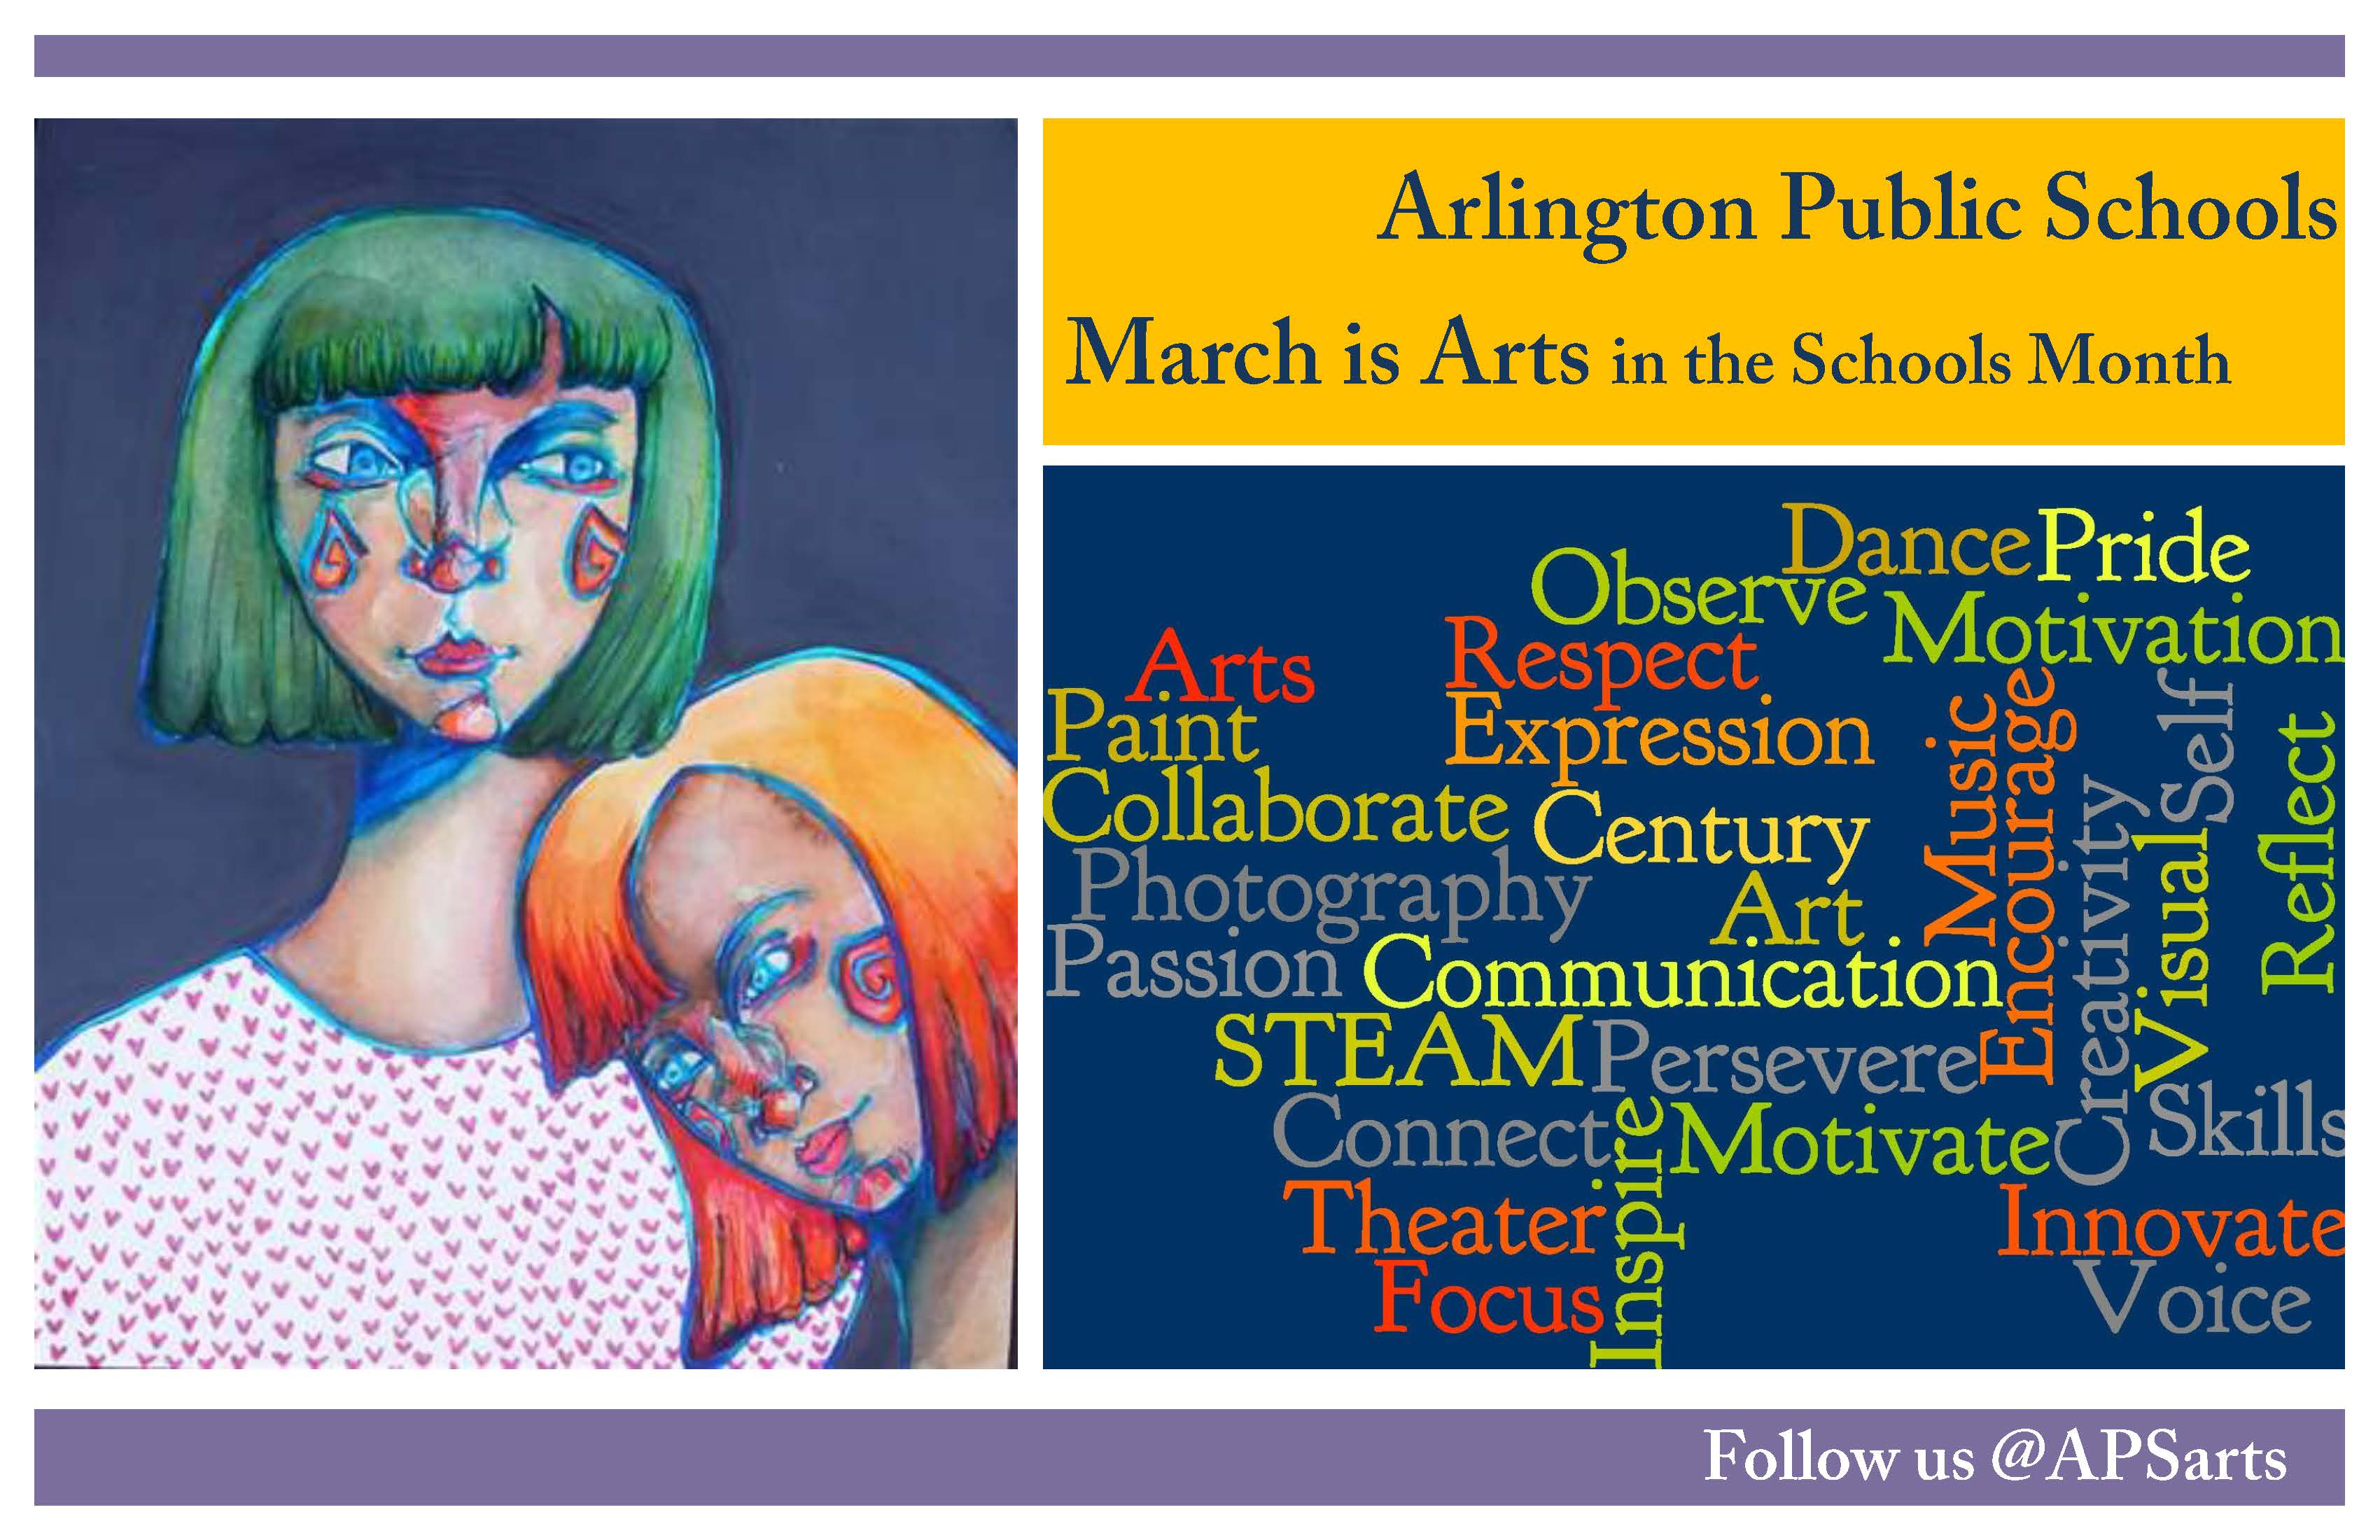 Celebrate Arts in the Schools in March